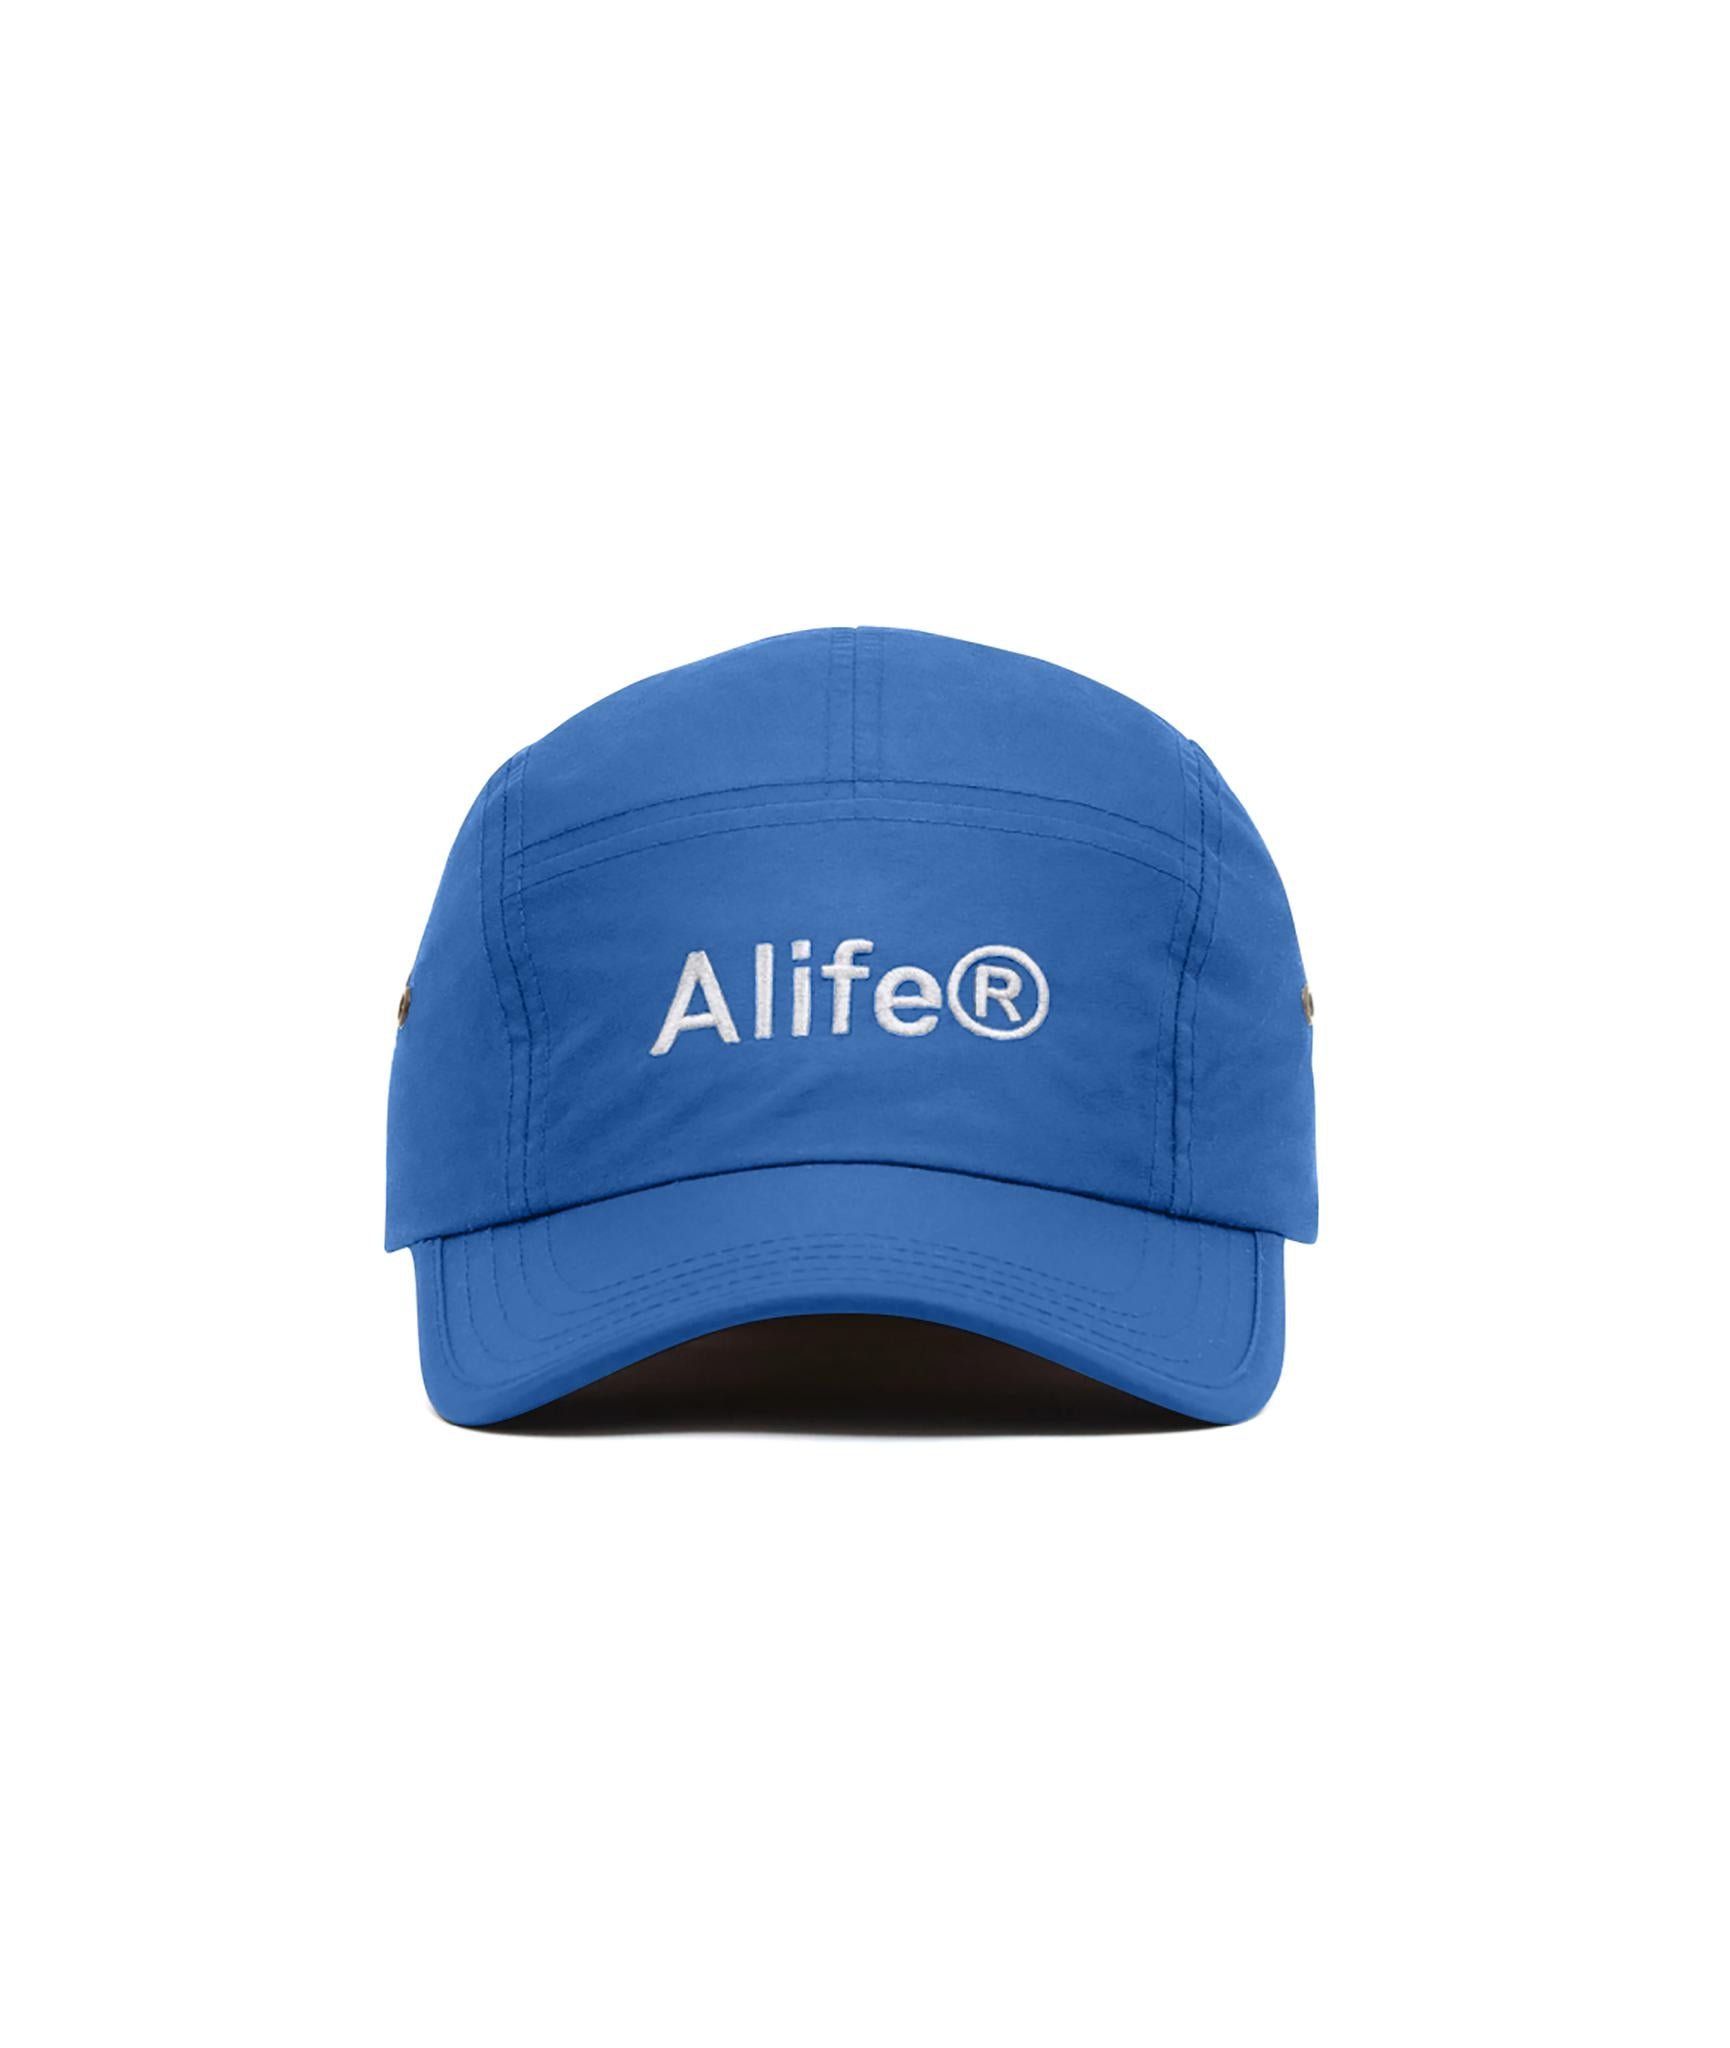 Alife Nylon 5-Panel Hat - Royal Blue